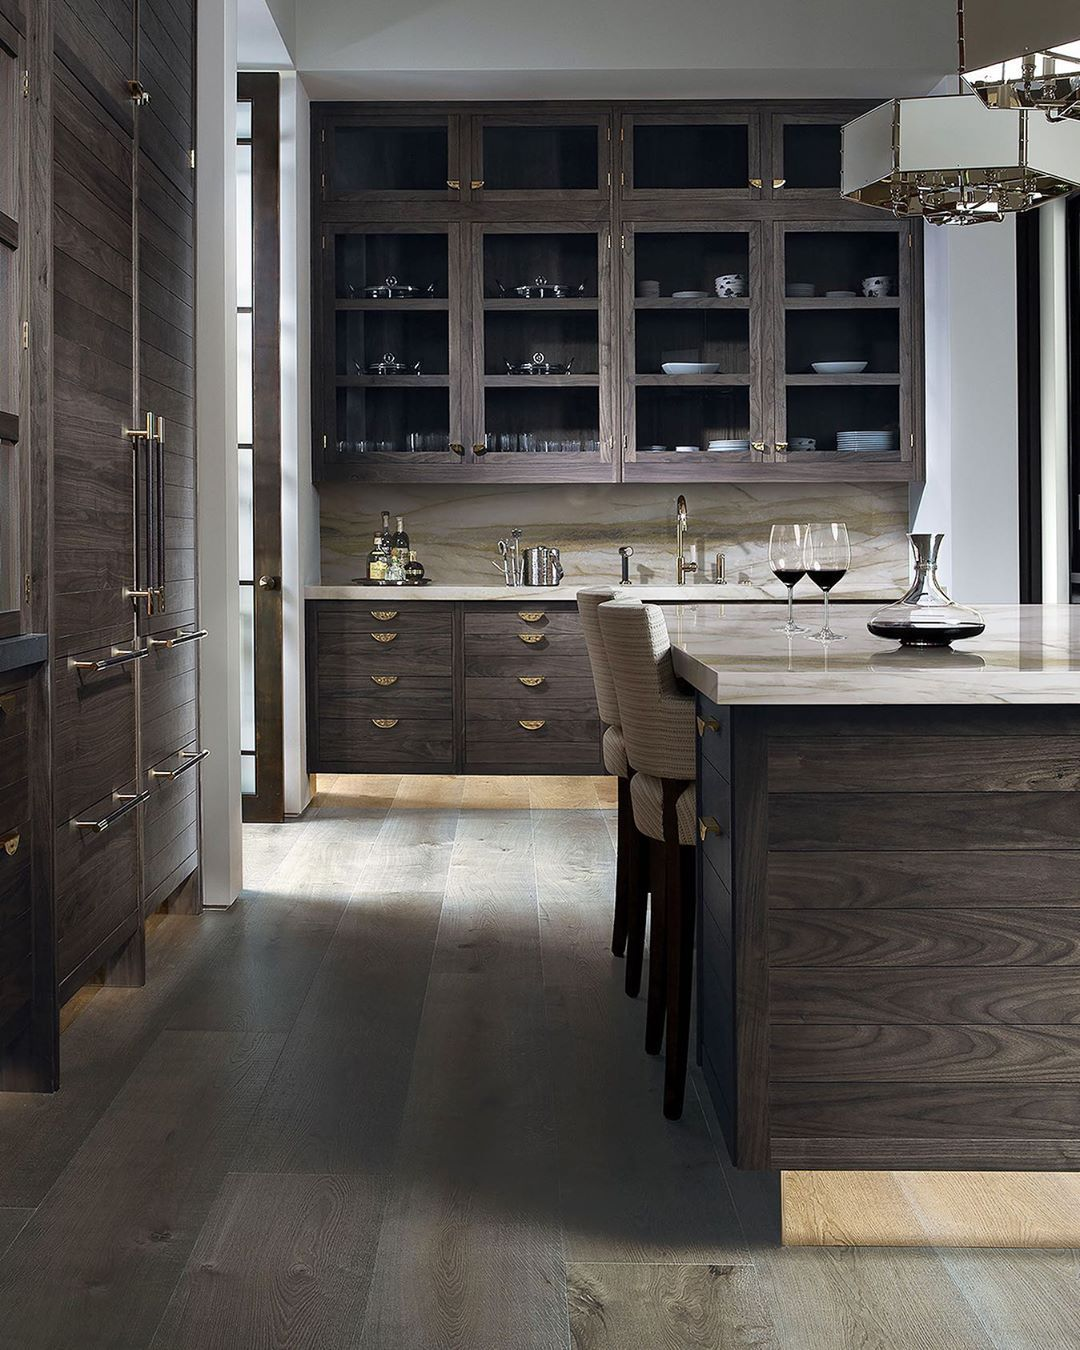 Smallbone On Instagram Bring A Subtle Sense Of Drama Into Your Kitchen With Naples Learn More In Ou In 2020 Smallbone Kitchens Kitchen Cabinet Design Cabinet Design